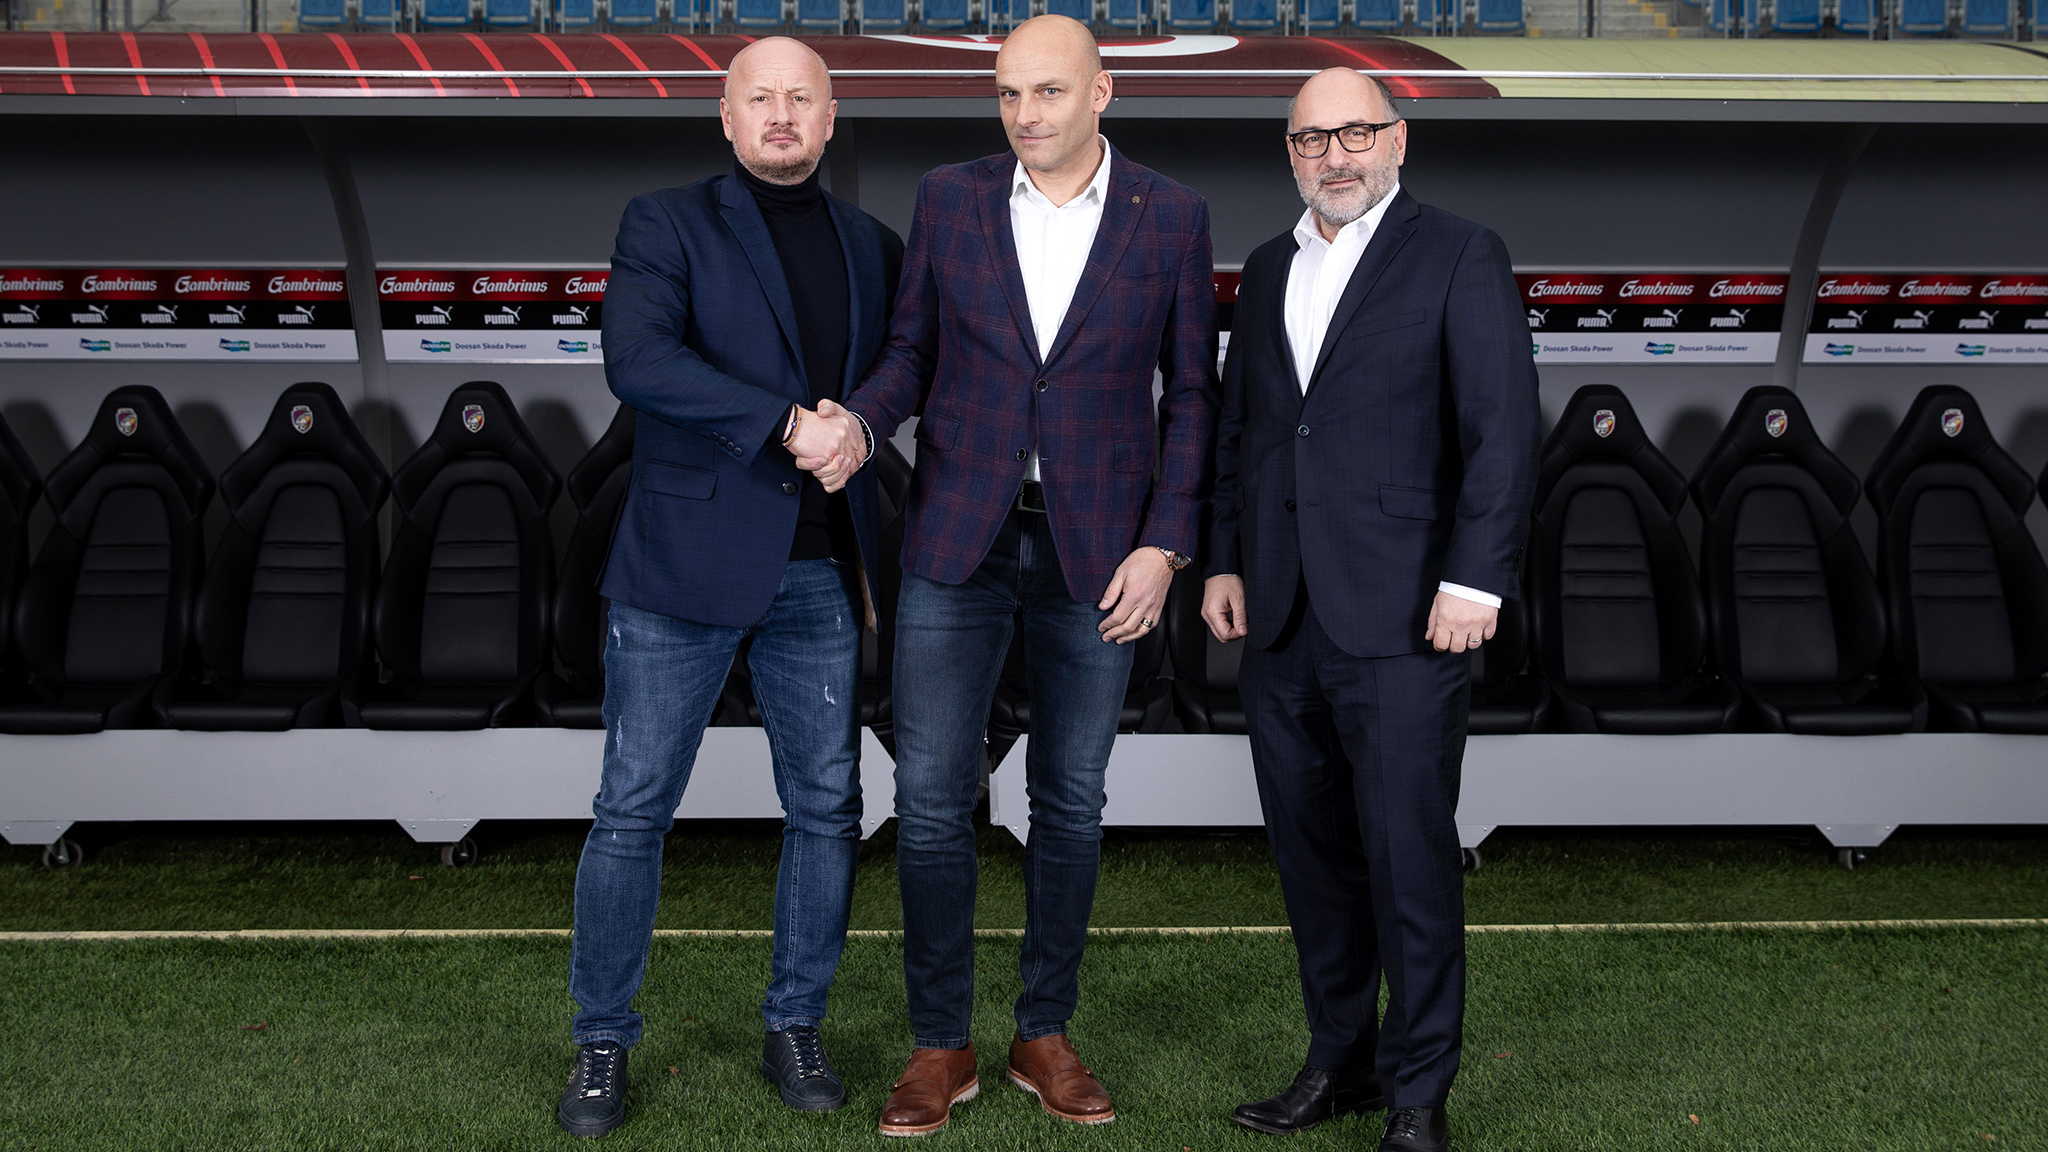 Adrian Guľa named new head coach of Viktoria Plzeň